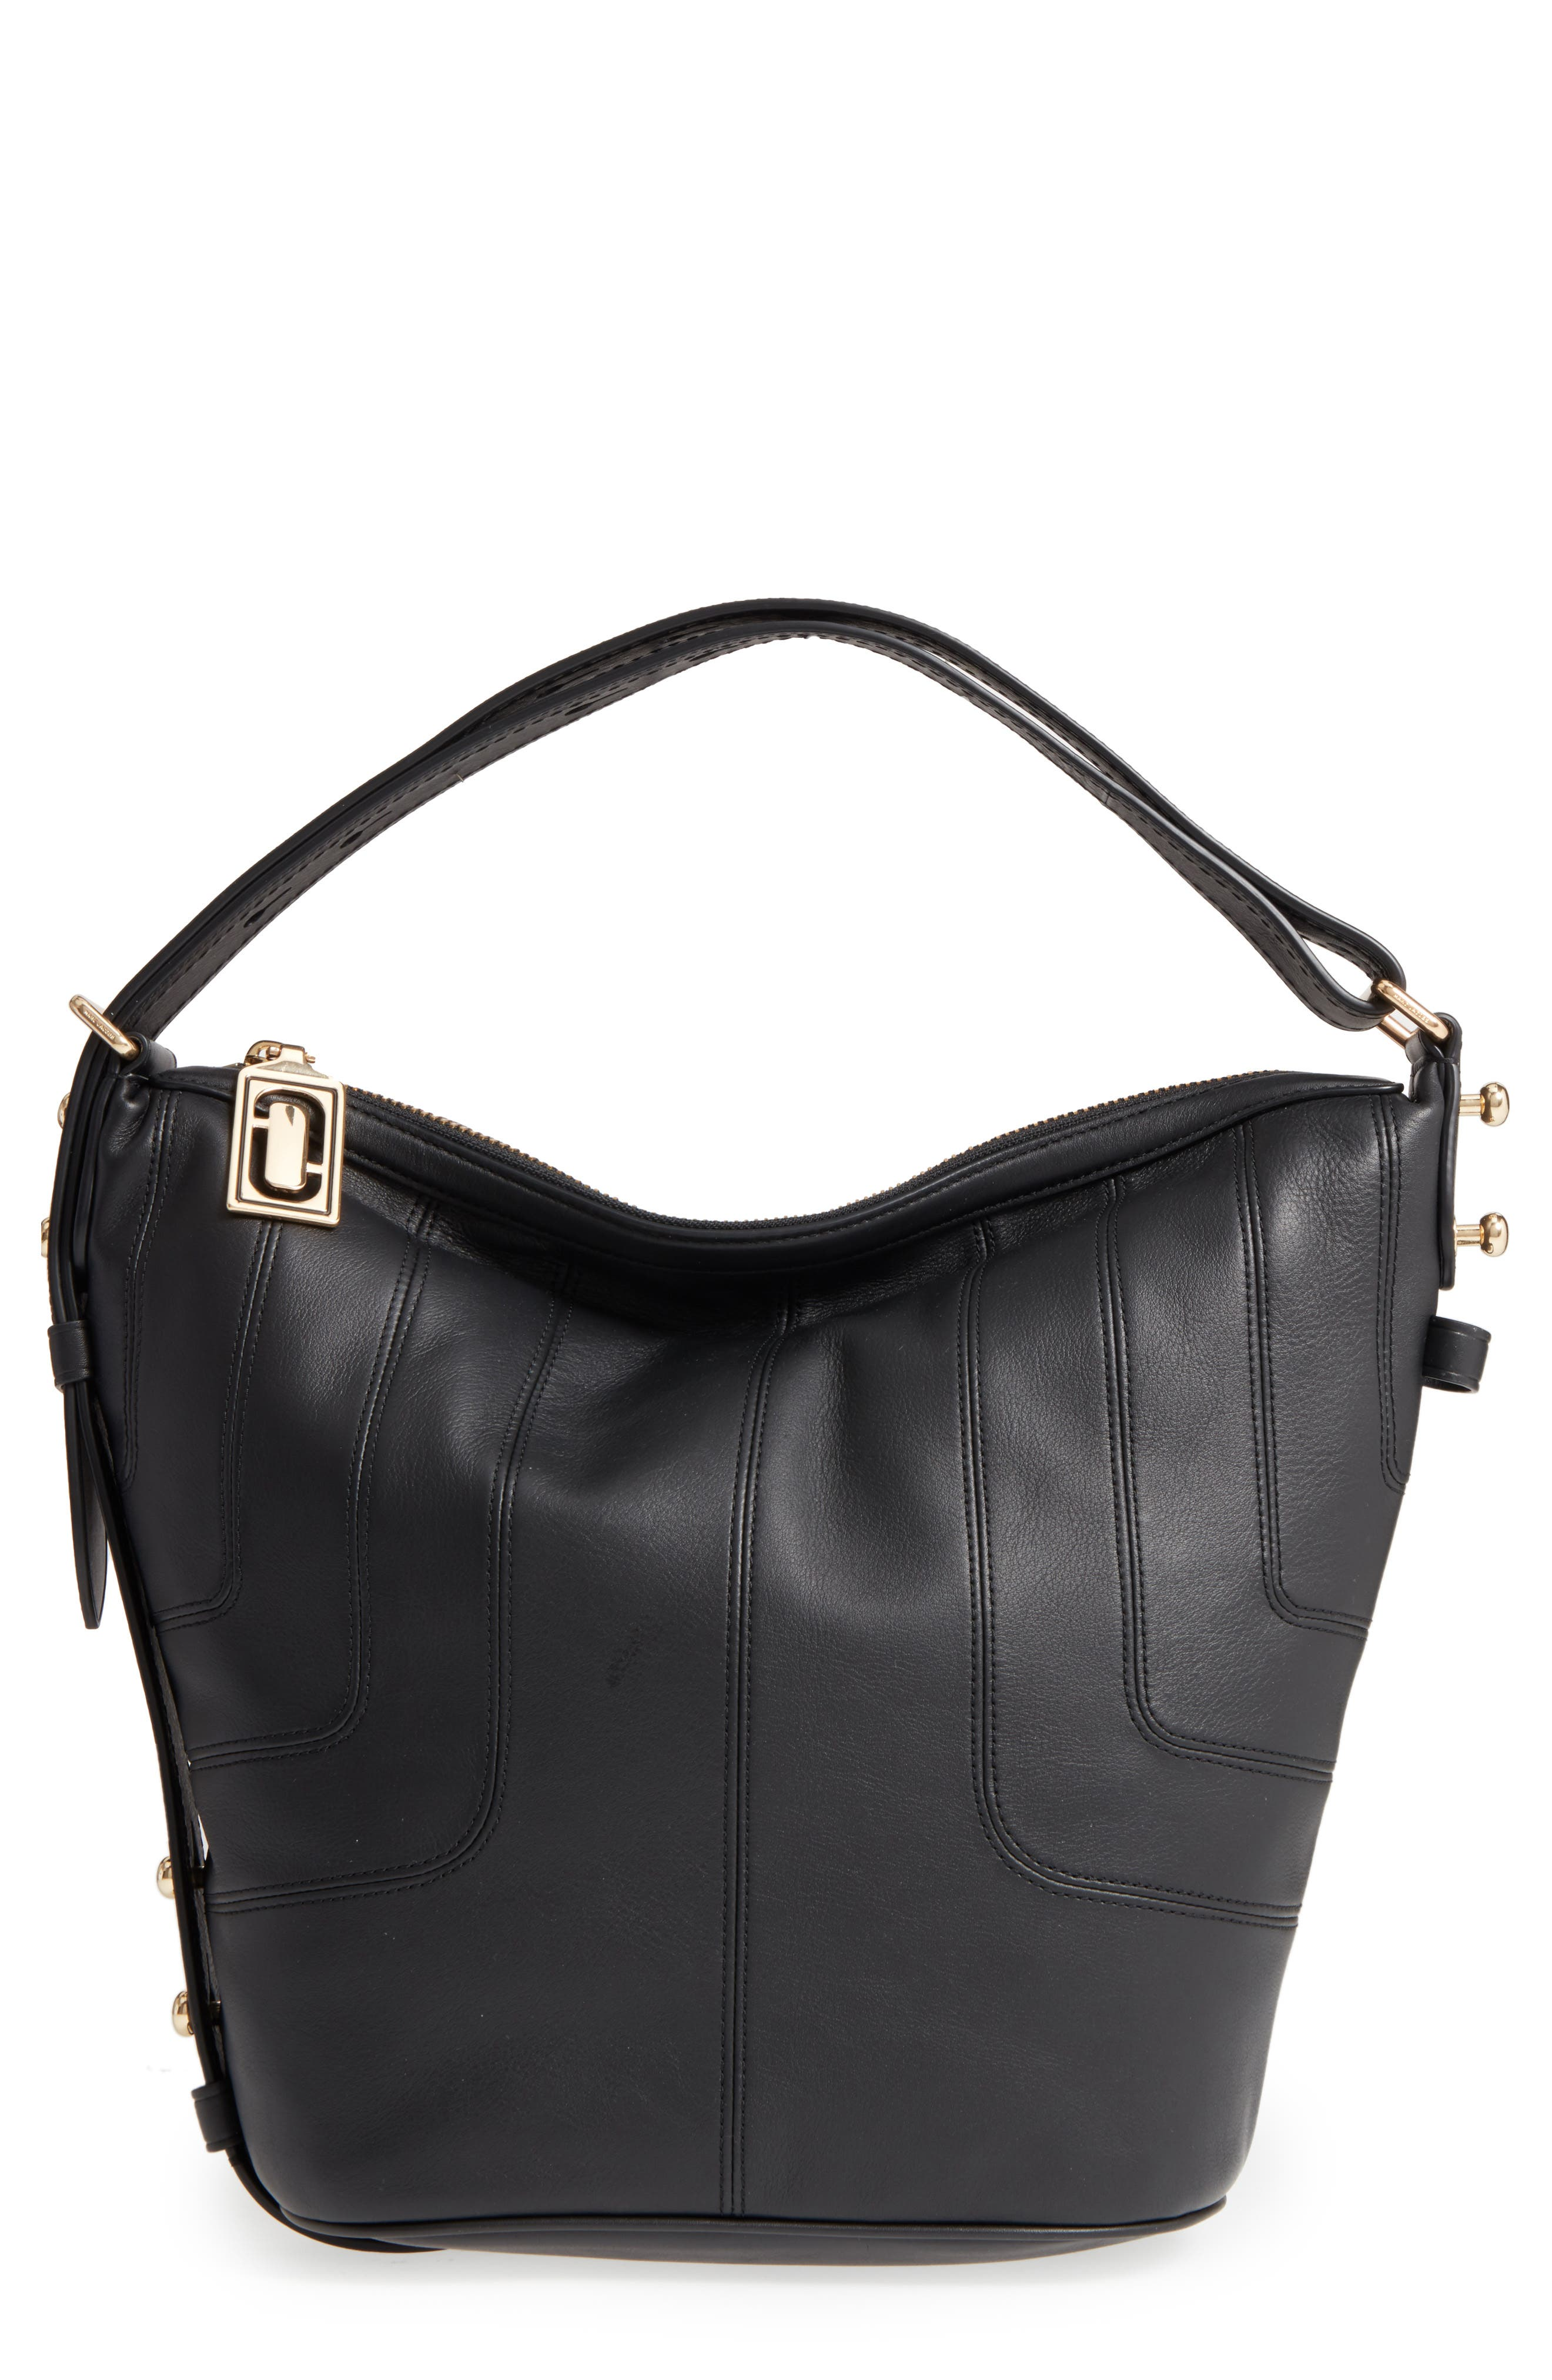 Alternate Image 1 Selected - MARC JACOBS The Sling Mod Leather Hobo/Crossbody/Sling Bag